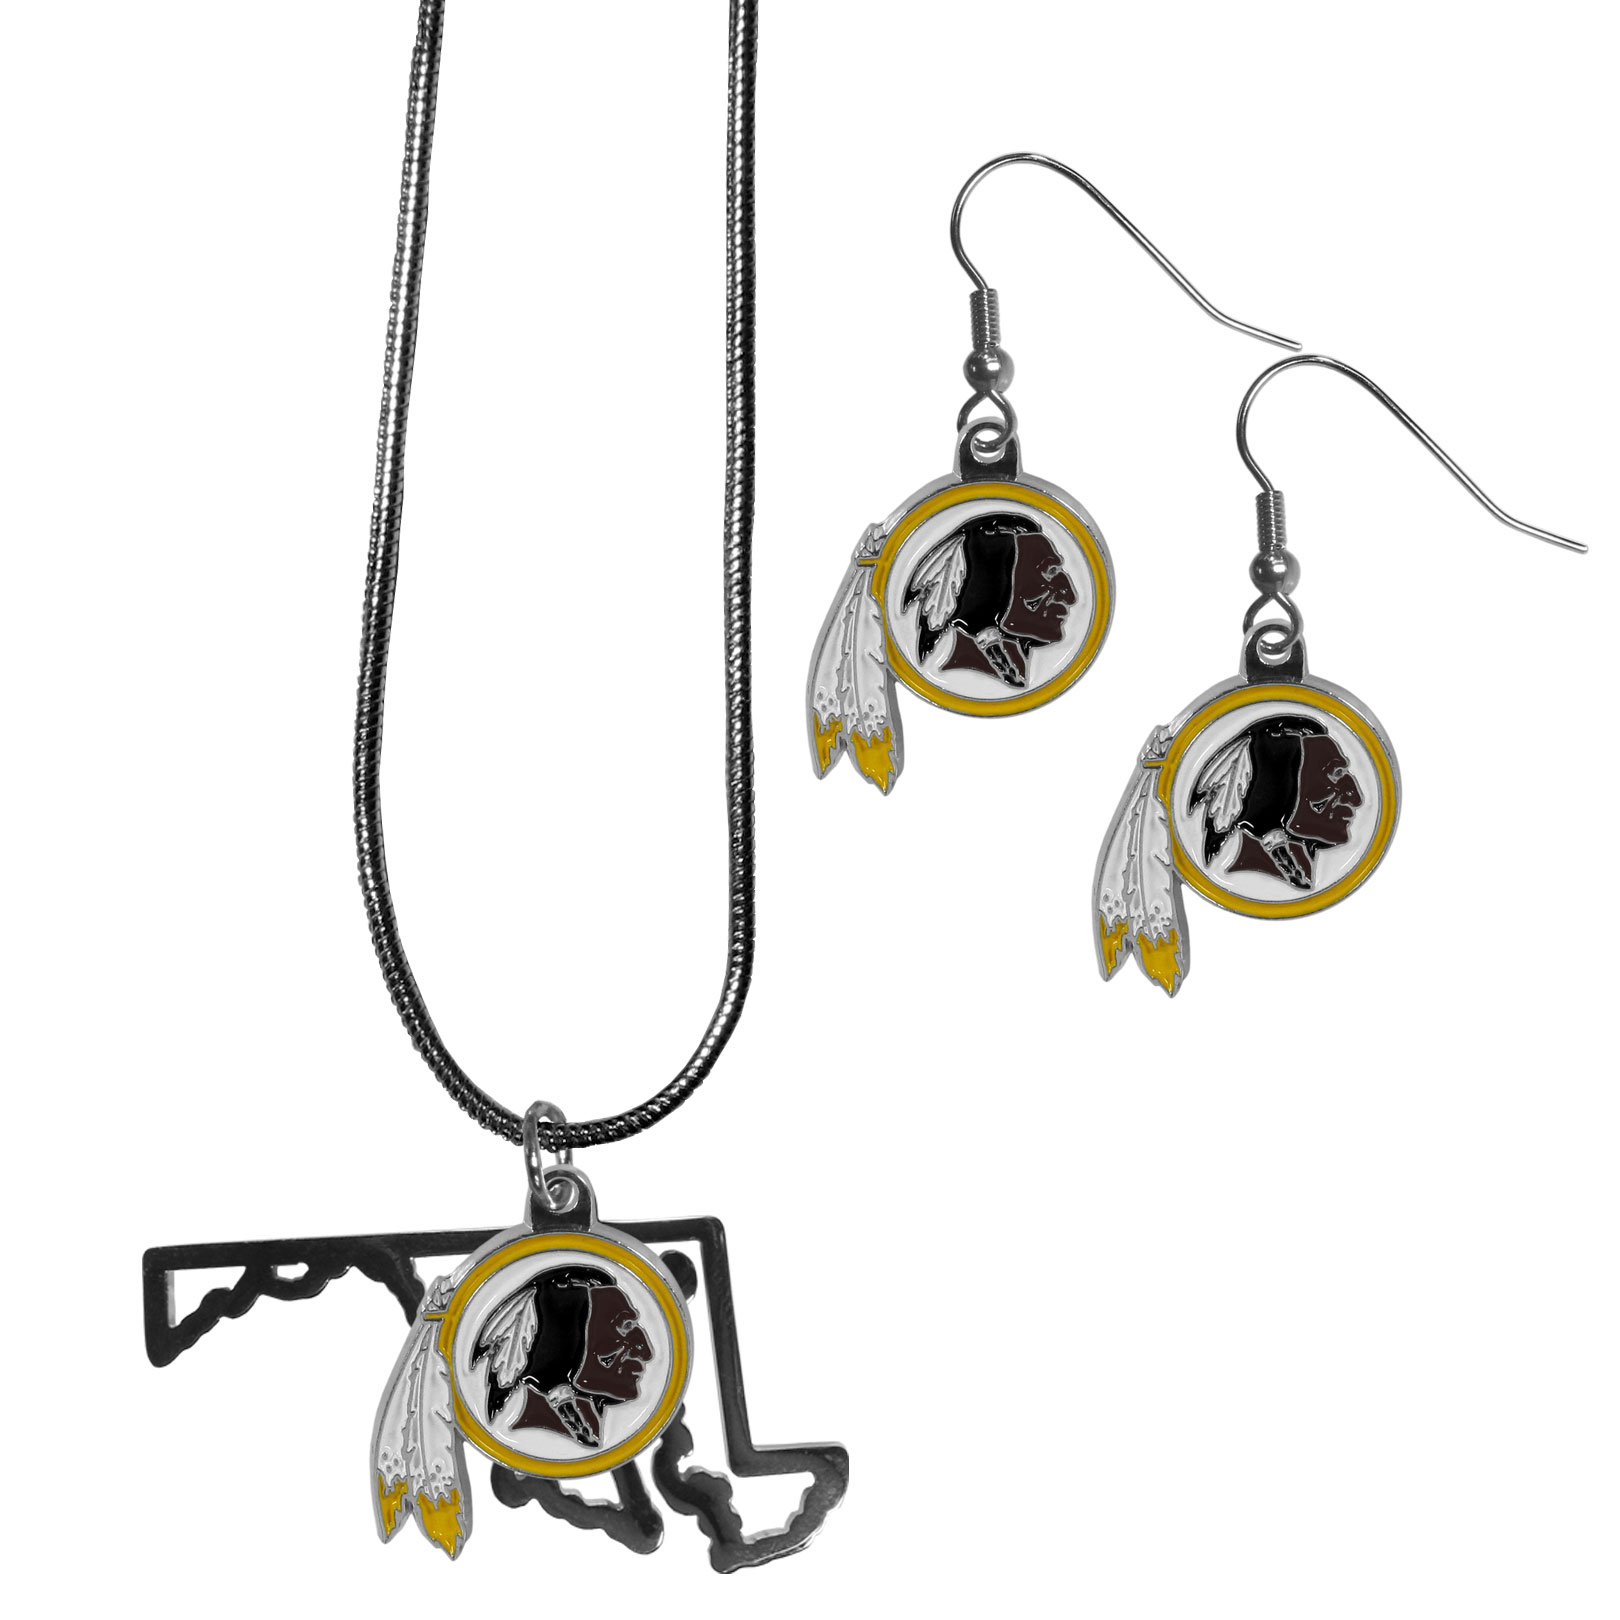 Washington Redskins Dangle Earrings and State Necklace Set - Get in on the trend! State themes are a trend that just keeps getting more popular and this jewelry set takes the state style and give it a sporty twist with a Washington Redskins necklace that features an Arizona state outline charm paired with a beautiful team charm and matching team charm dangle earrings. The earrings feature hypoallergenic fishhook posts that are nickel free.